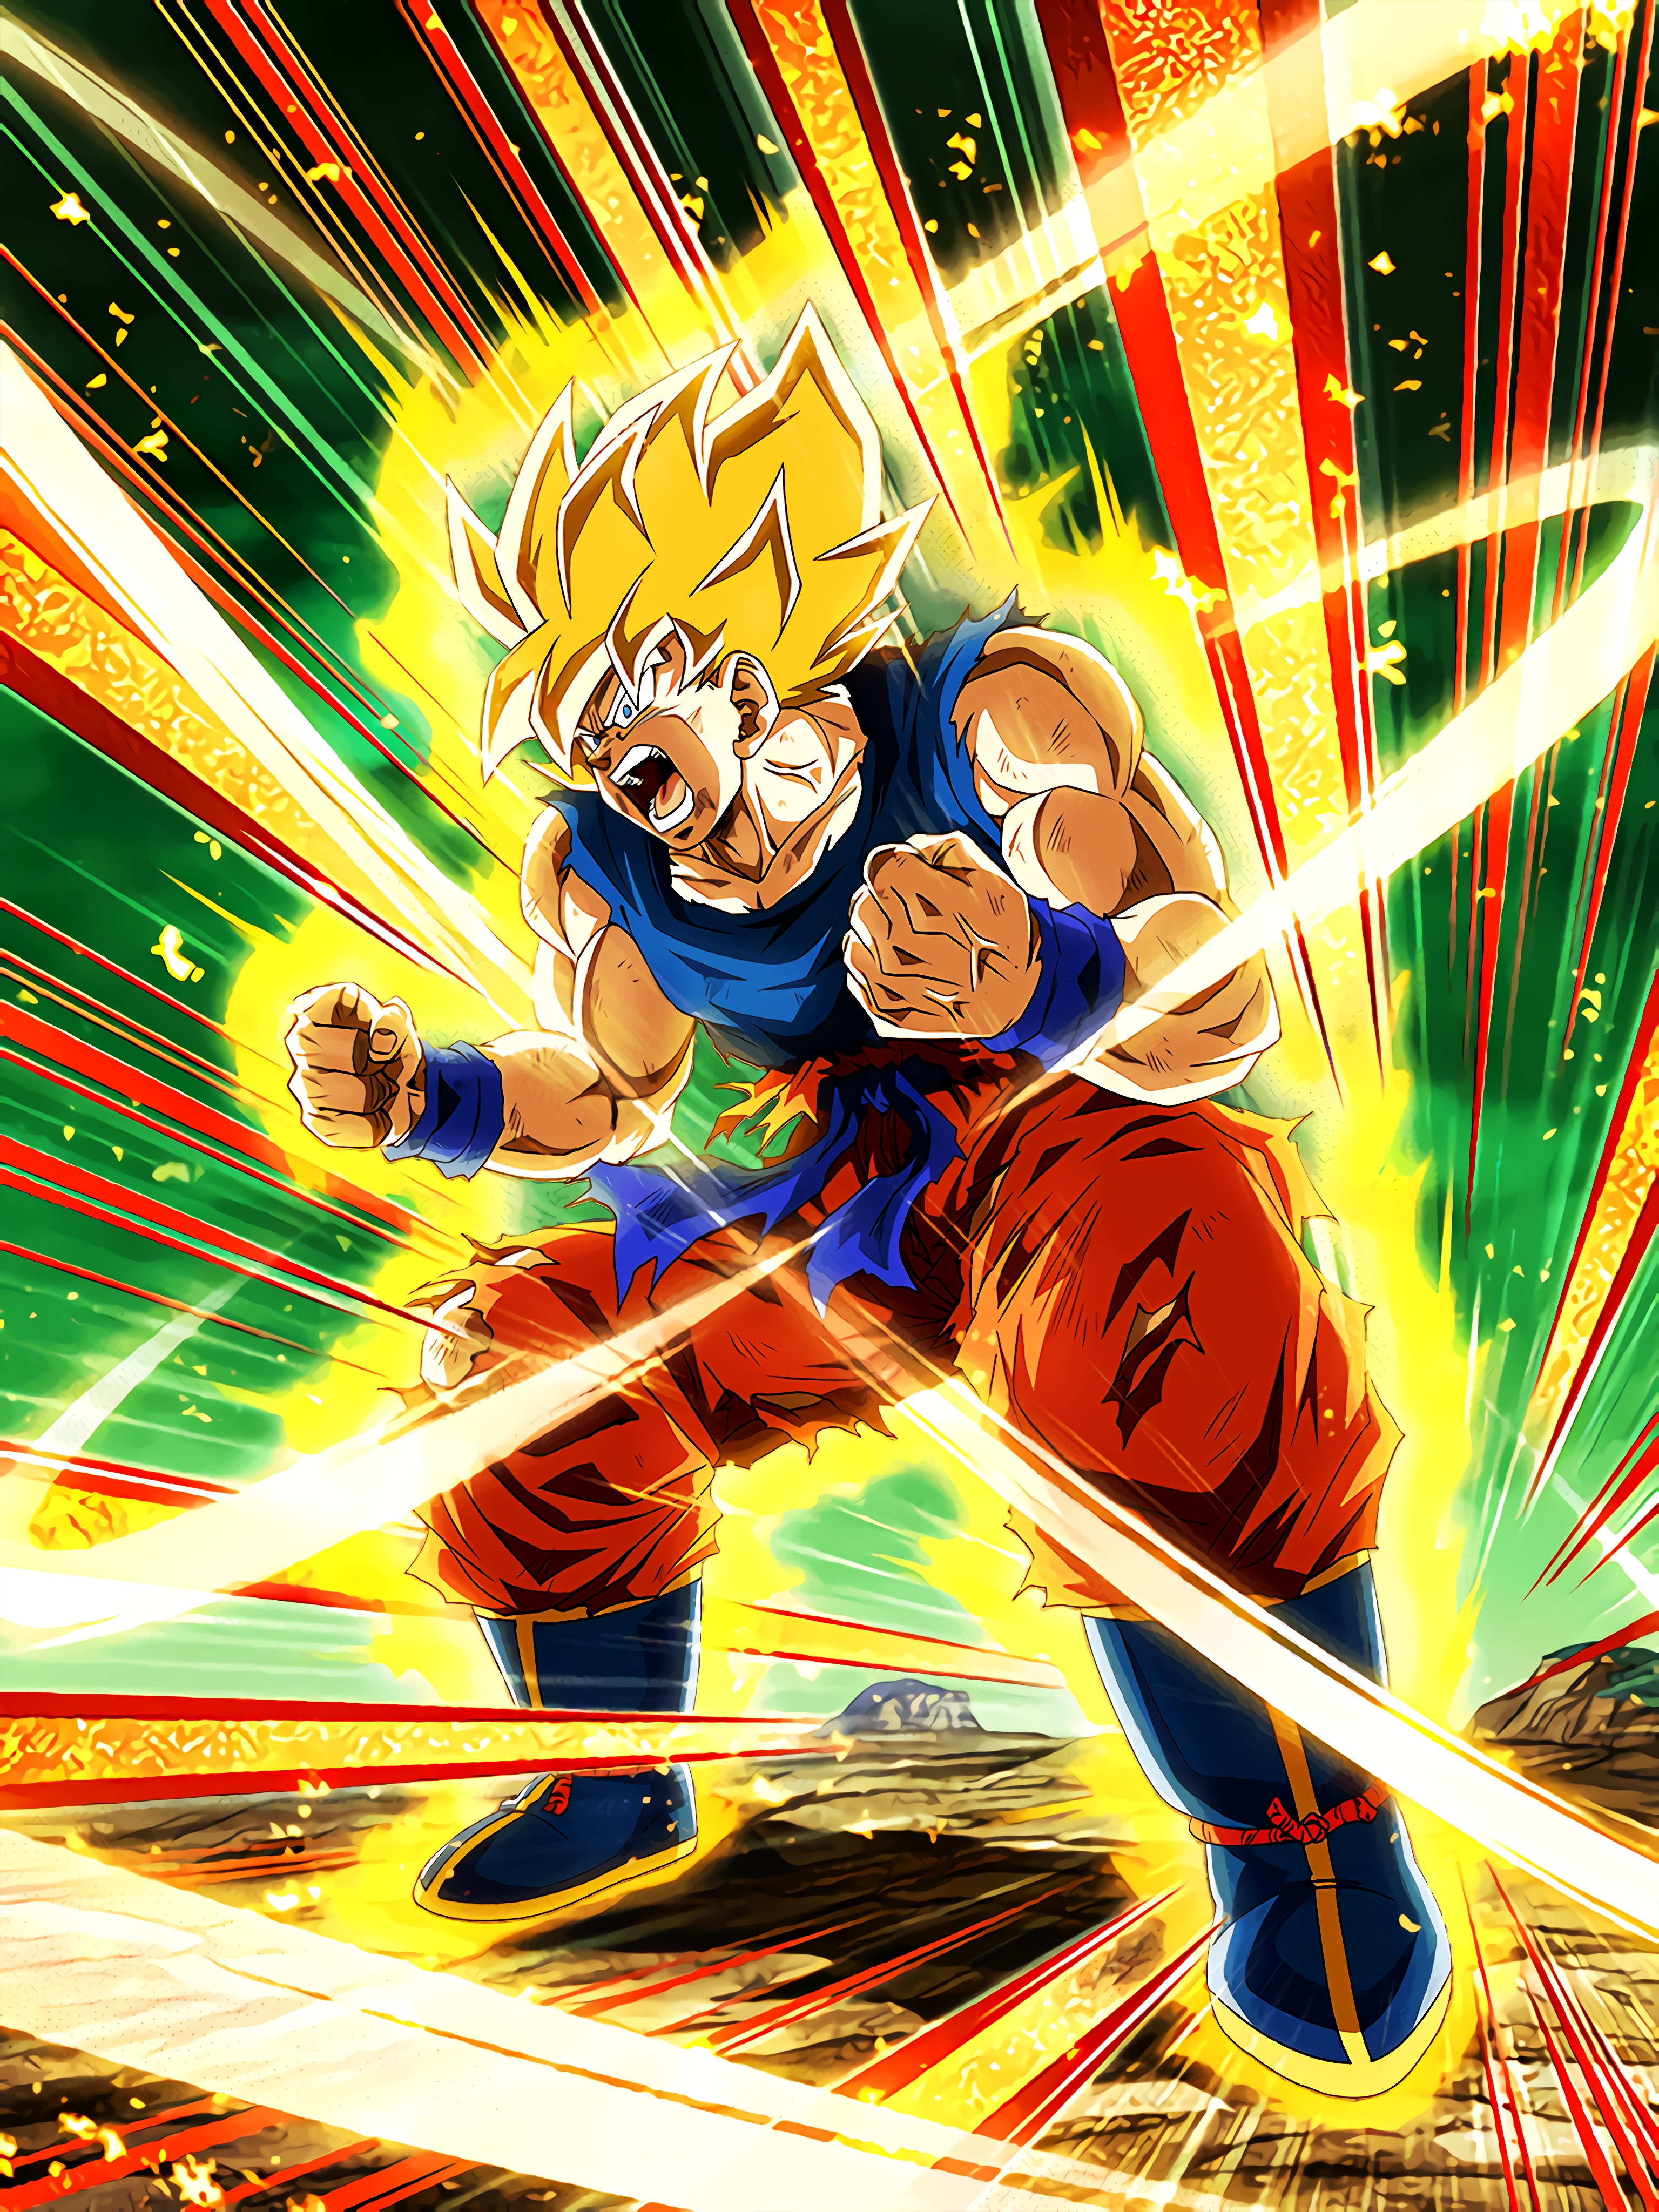 Extreme Rage Super Saiyan Goku Rage Mode Art (Dragon Ball Z Dokkan Battle).jpg